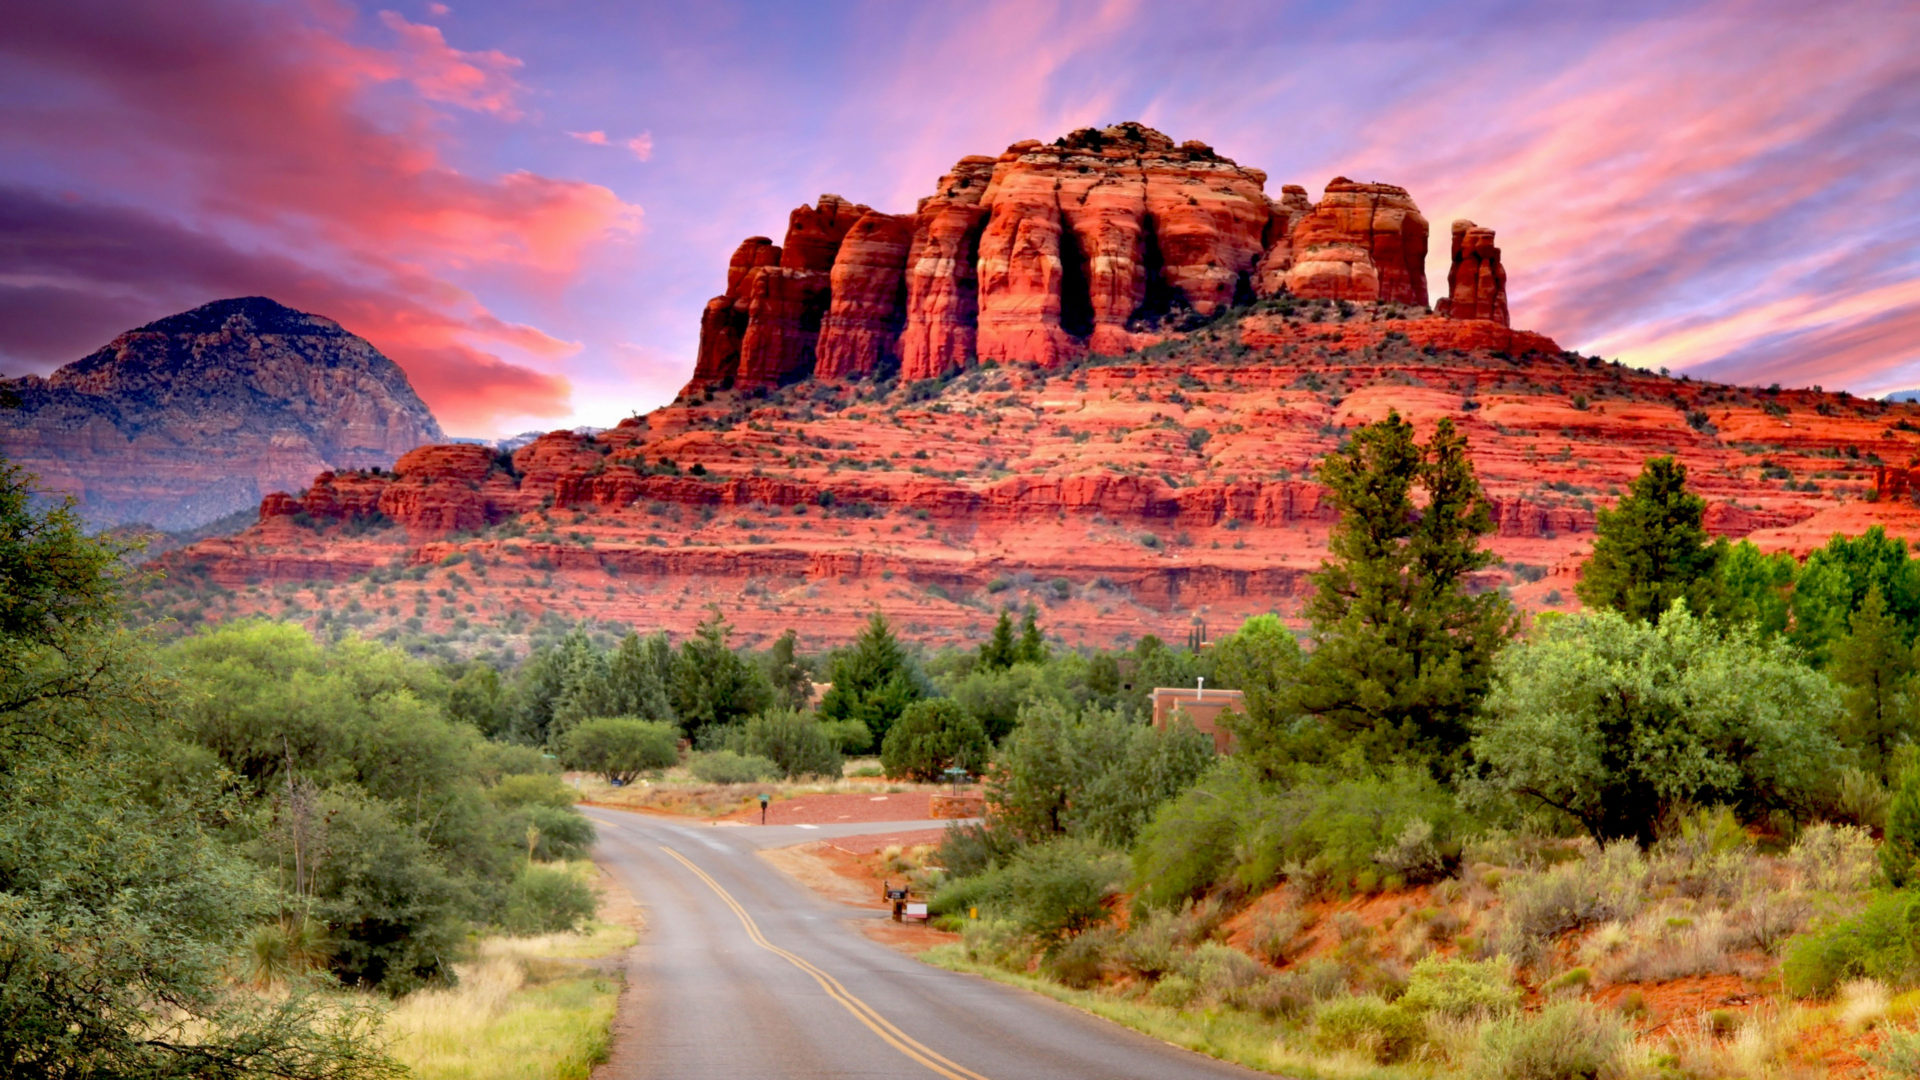 Fall Computer Wallpaper Fly Drive Scenario Of Sedona Arizona United States